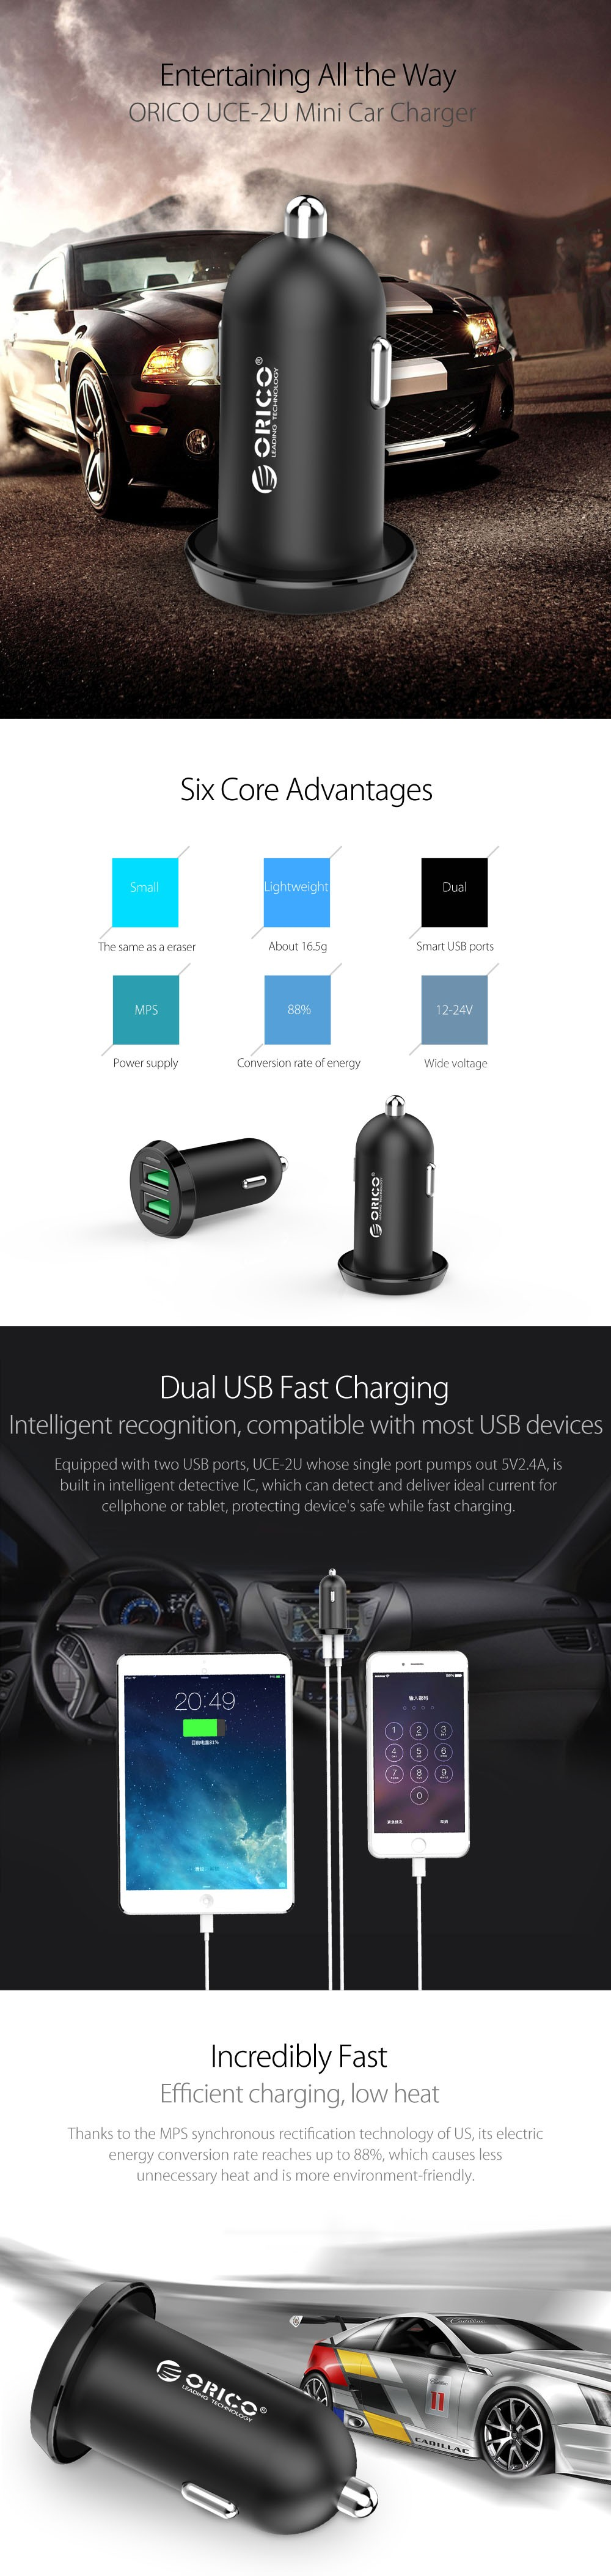 Dual Usb Car Charger Adapter ORICO 2 USB Port Led 2.4A Smart Car Charger for Iphone Samsung Phone Car Charging Cccessories